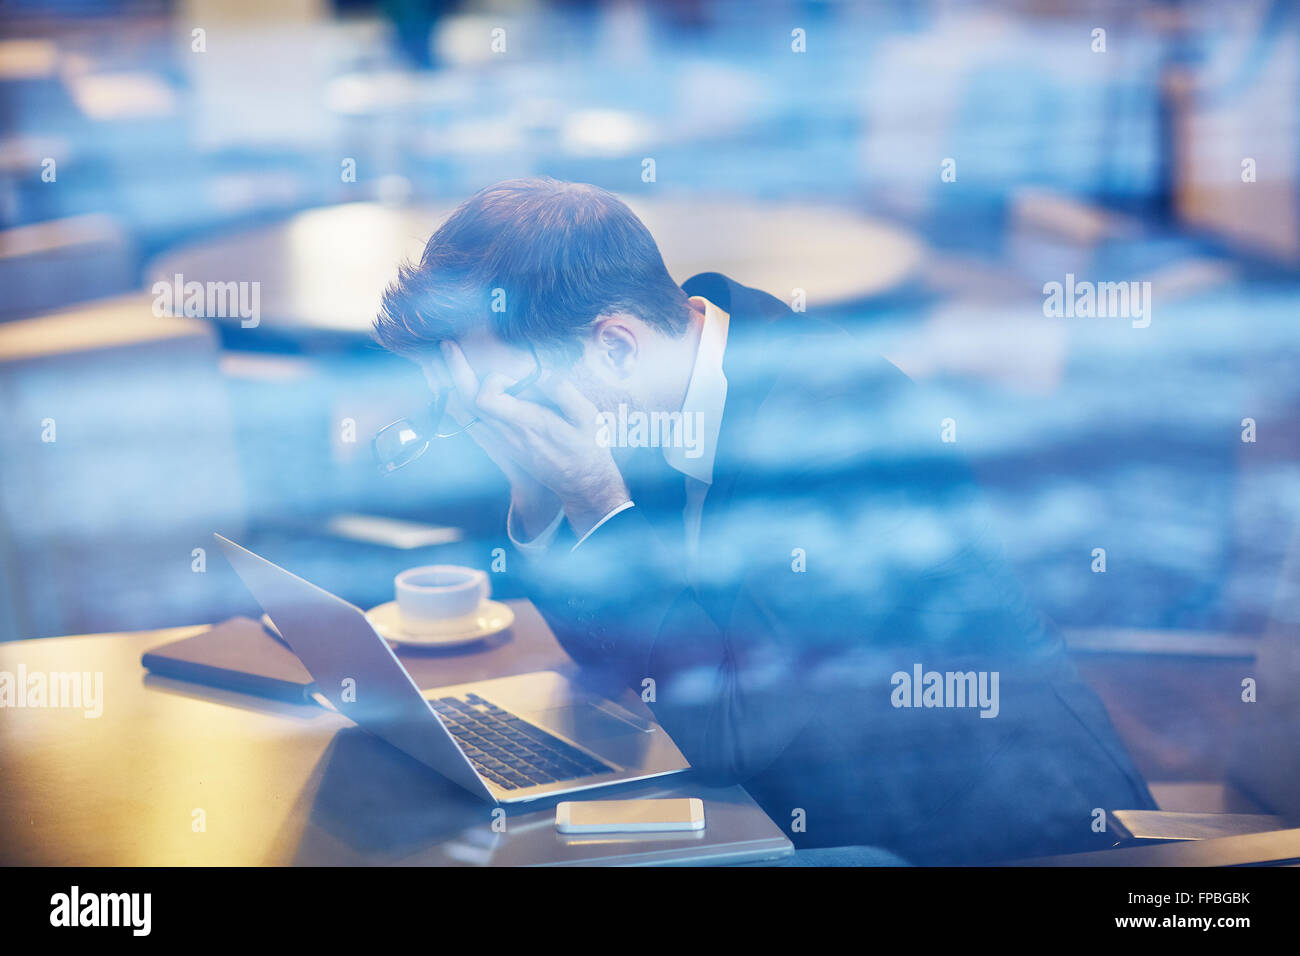 Stressed businessman sitting in front of laptop in cafe - Stock Image